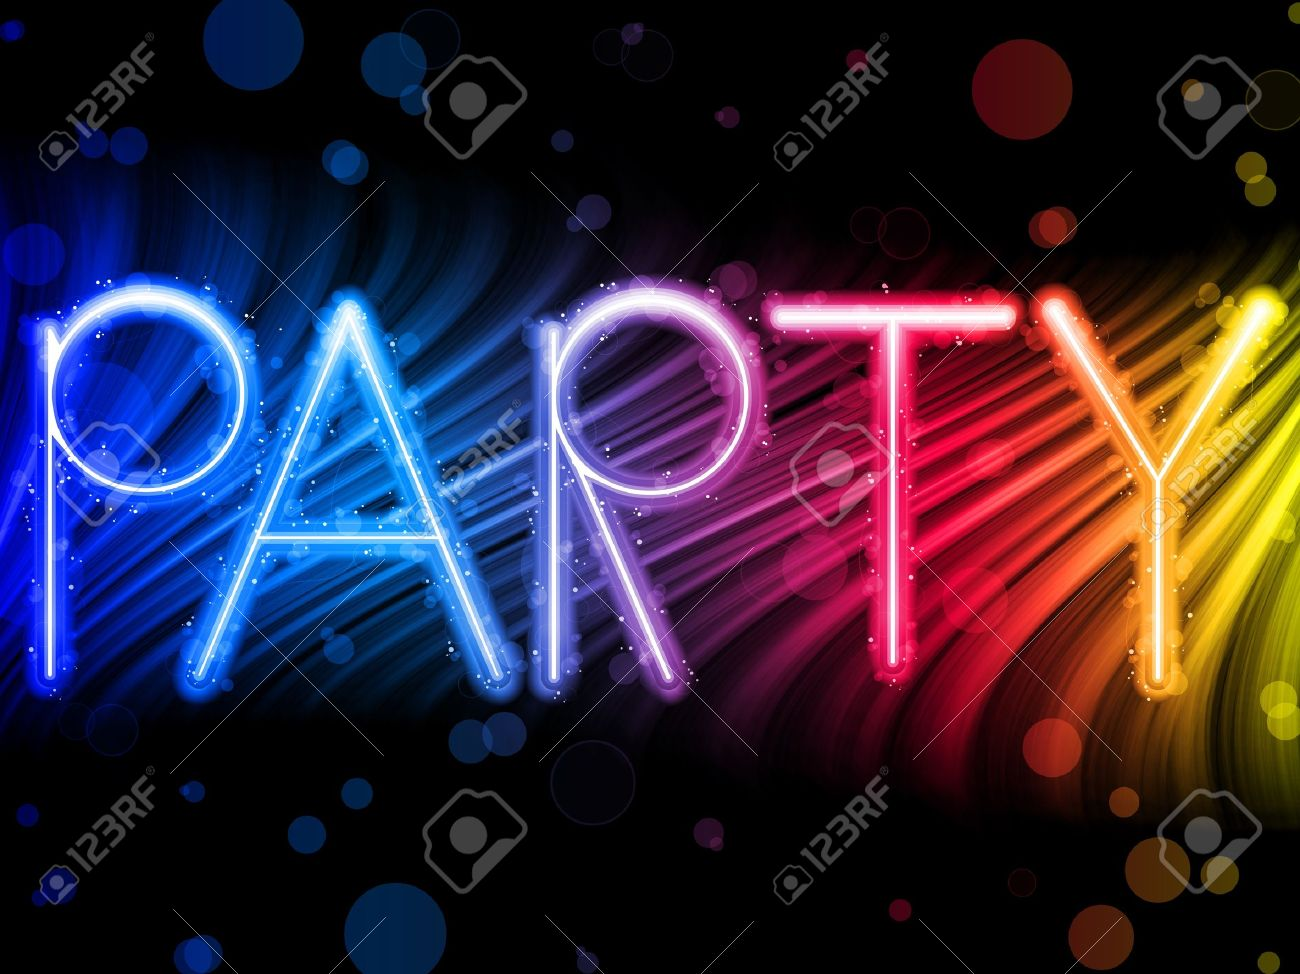 Party Abstract Colorful Waves on Black Background Stock Vector - 7806720